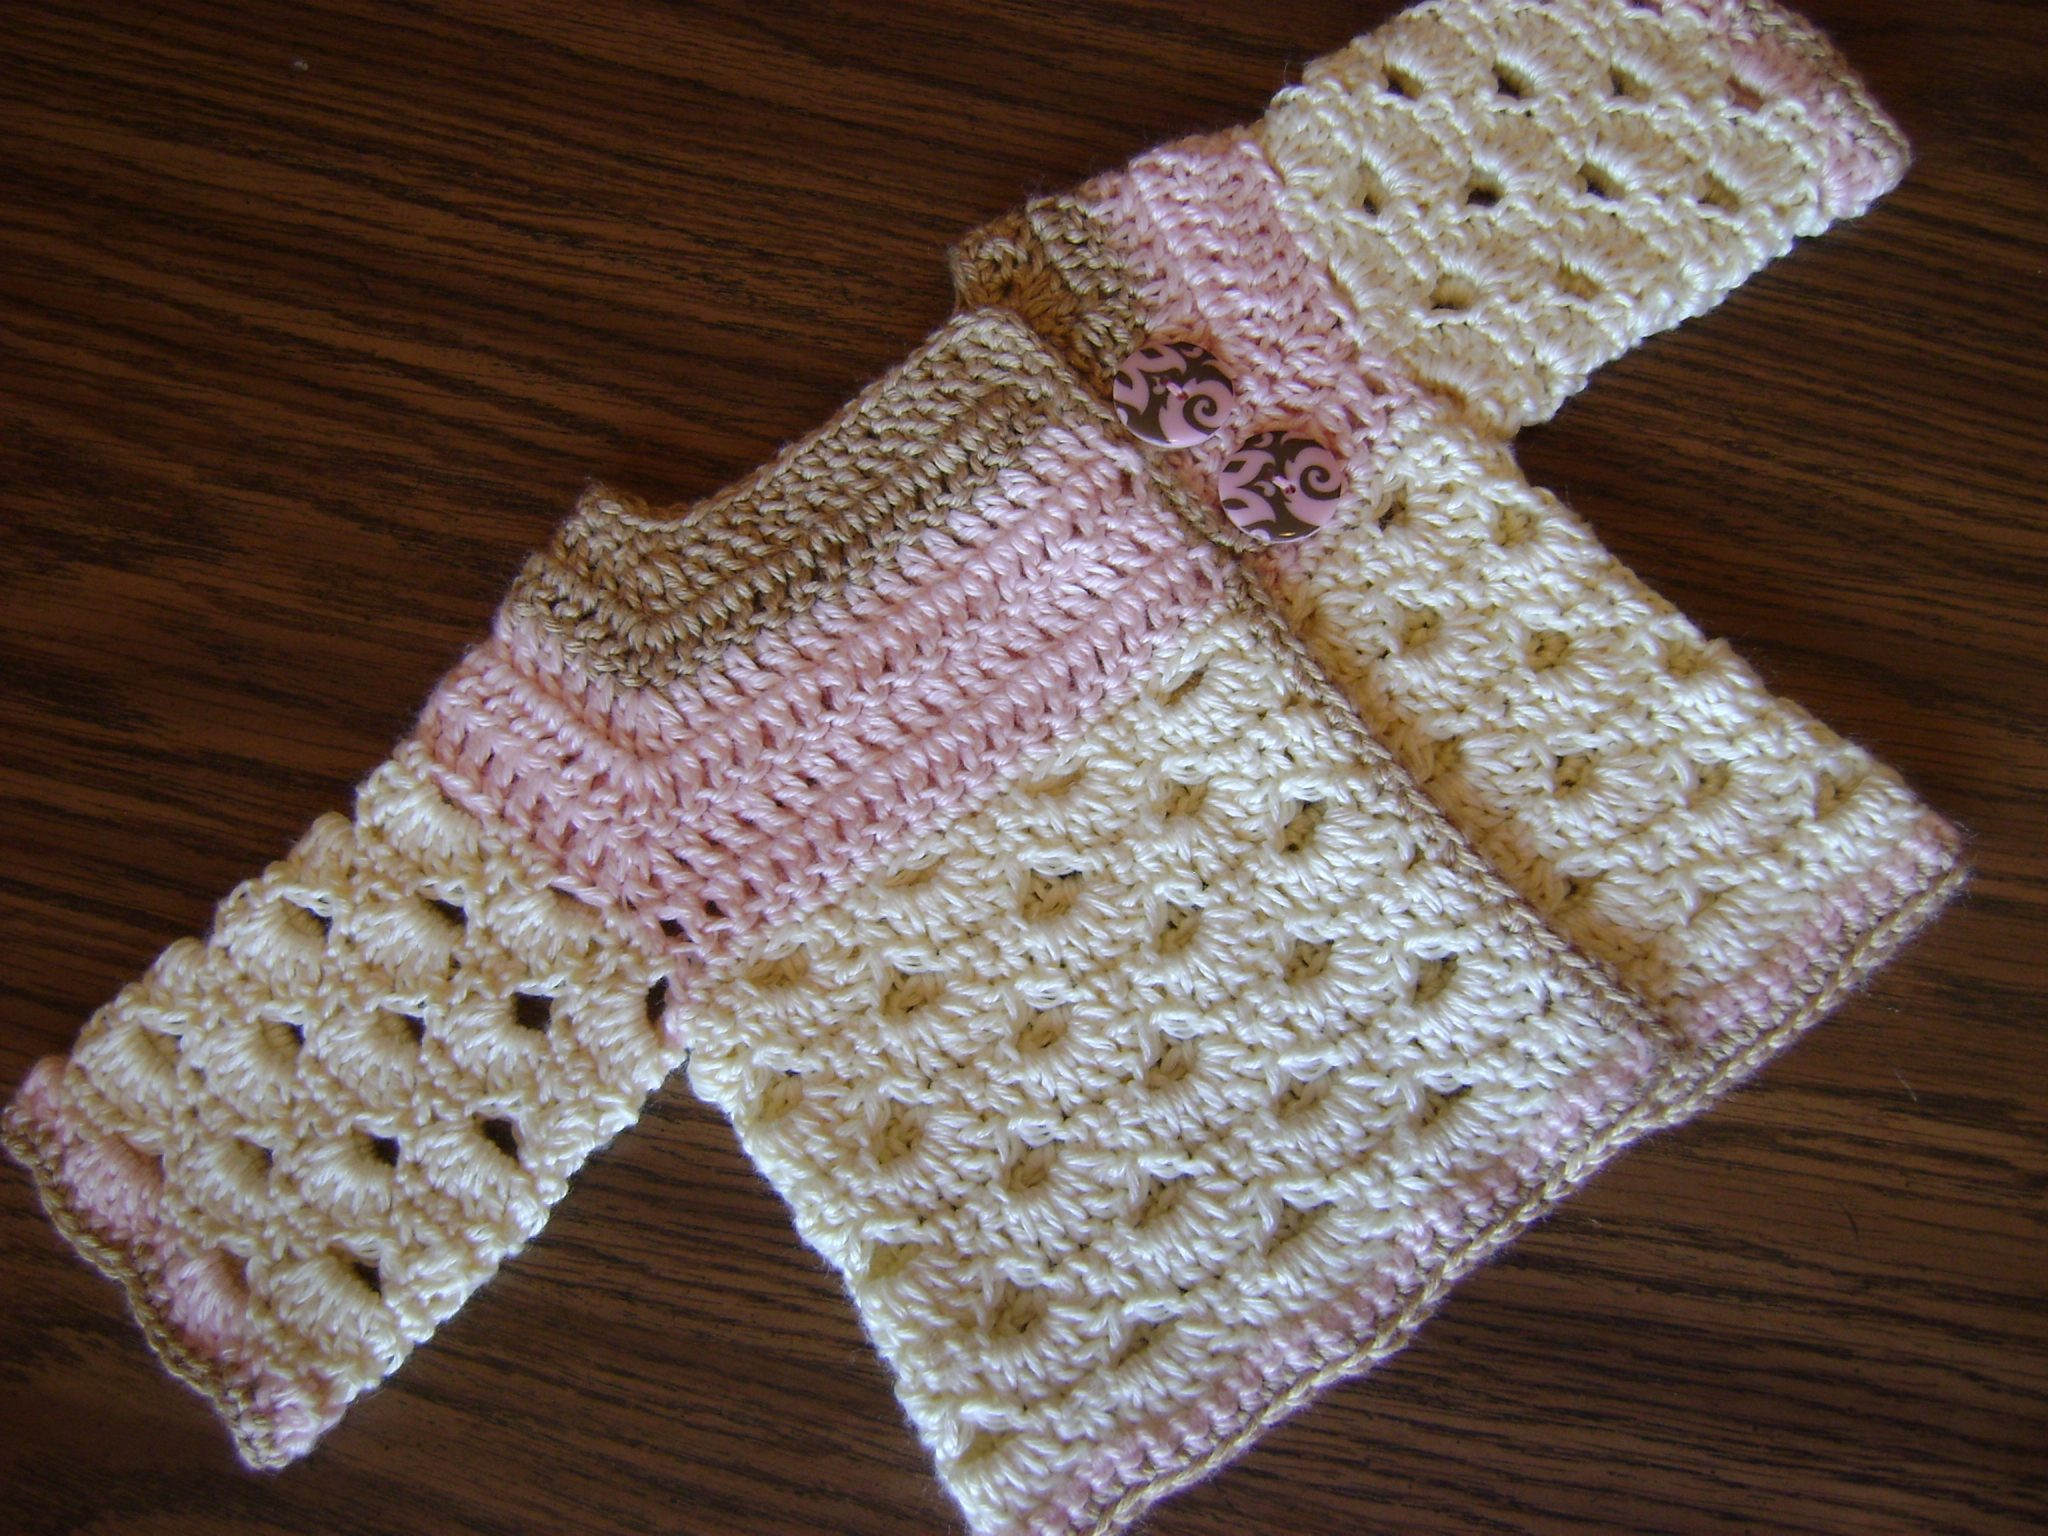 EASY CROCHETED BABY SWEATER PATTERNS ONLINE Crochet and